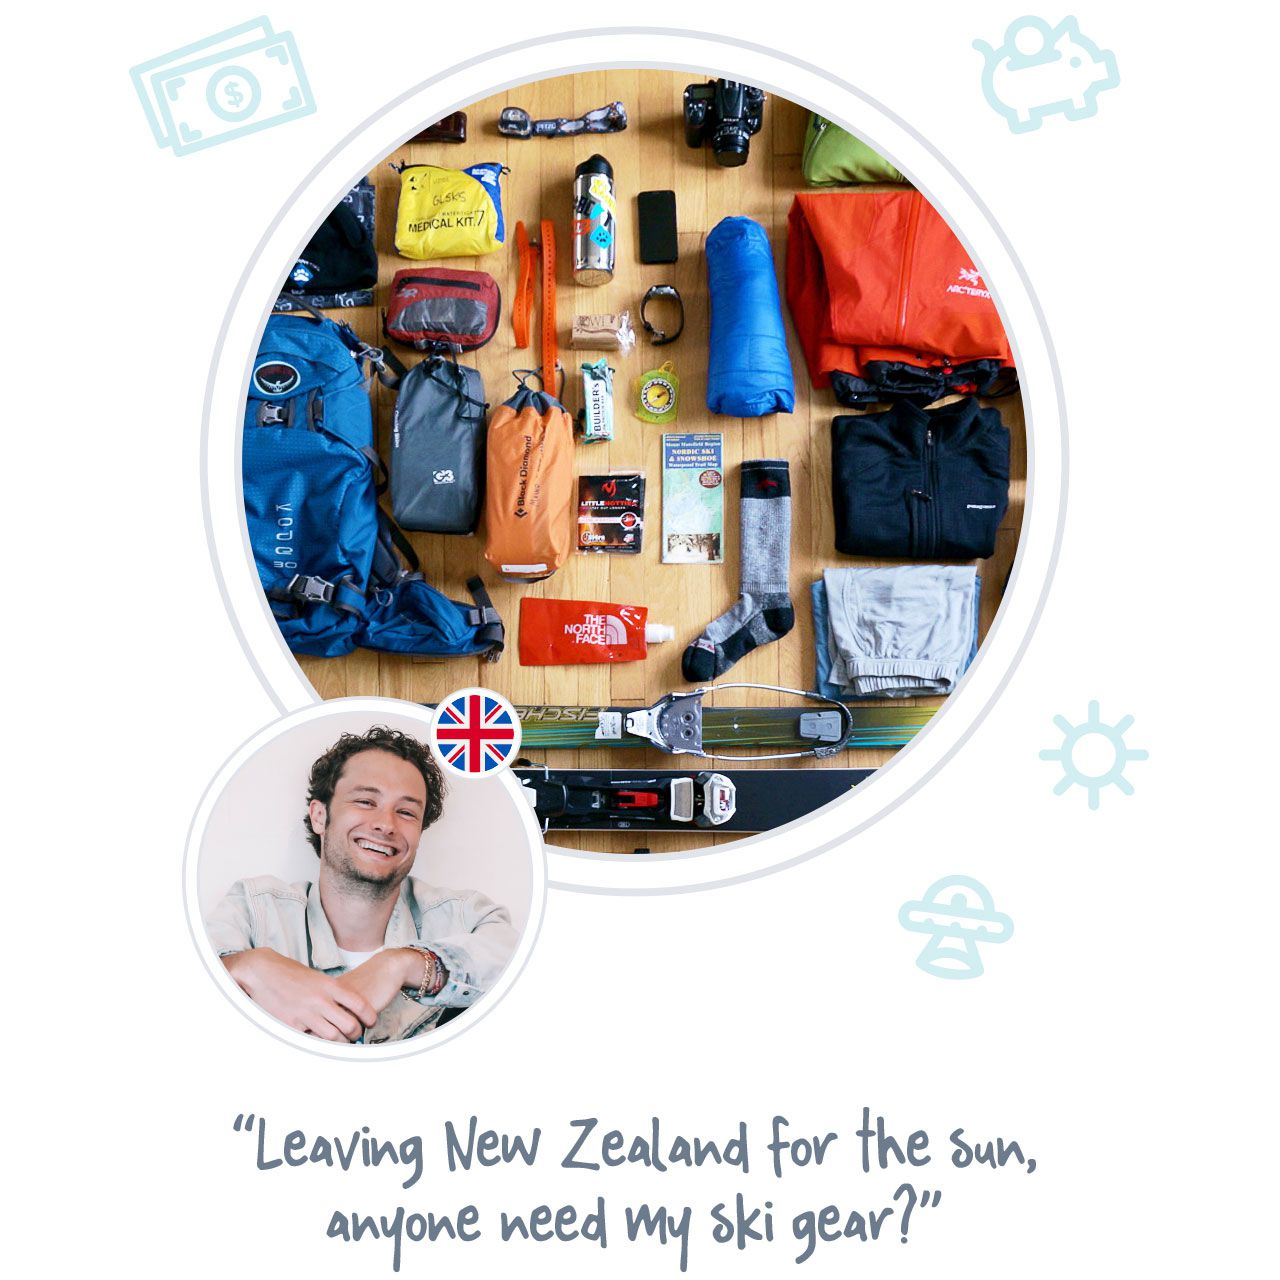 SELL ITEMS - Sell travelling items you no longer need to new arriving backpackers when you are ready to leave a place